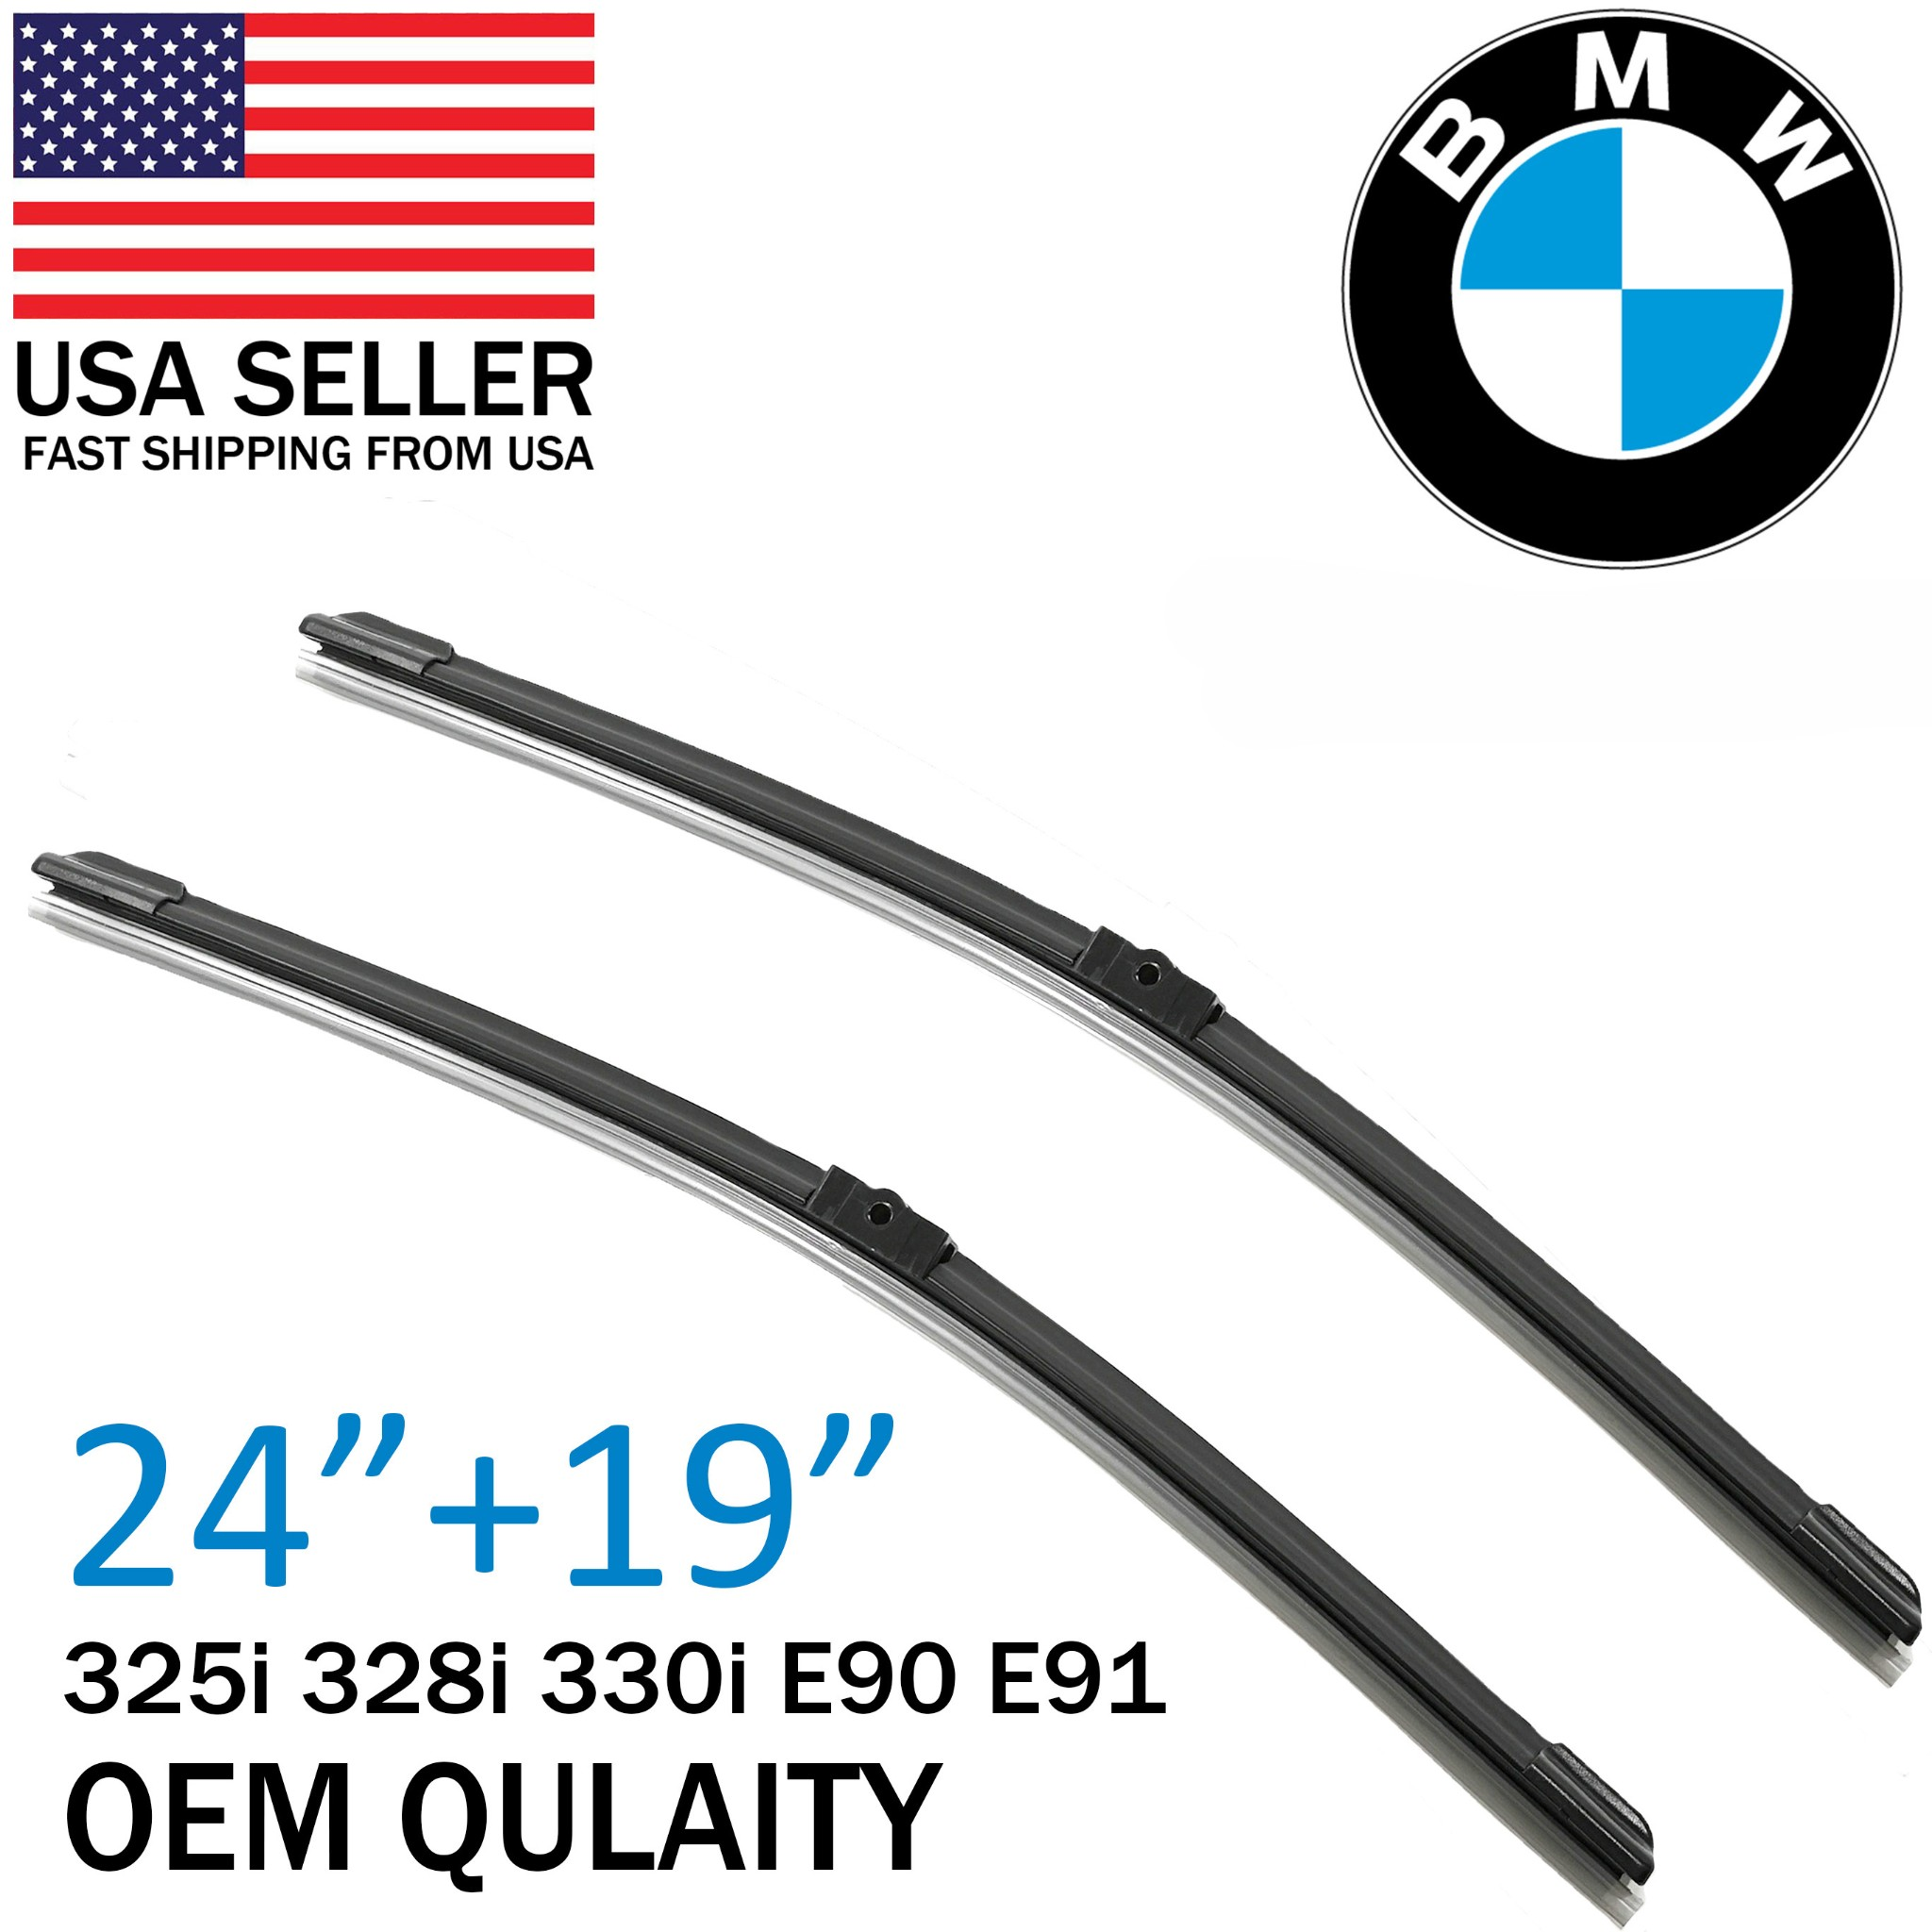 2013 Bmw 328I Windshield Replacement Cost details about top oem quality wiper blades for bmw e90 e91 325i 328i 330i  2006-2009